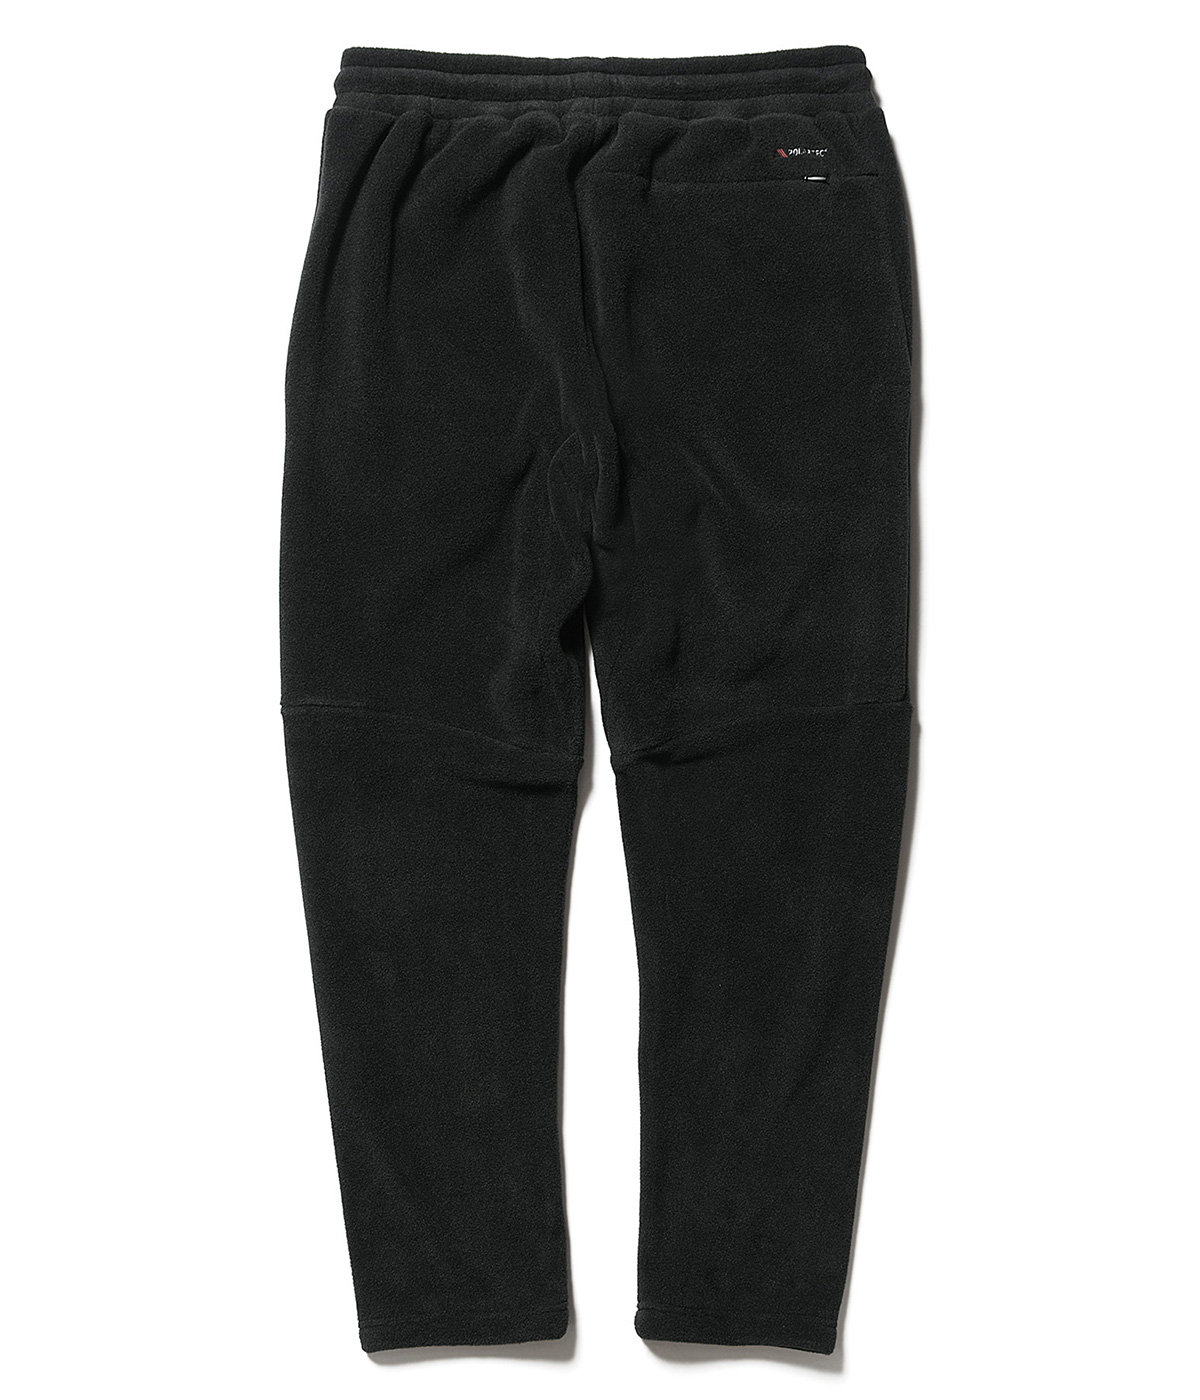 POLARTEC CLASSIC FLEECE PANTS